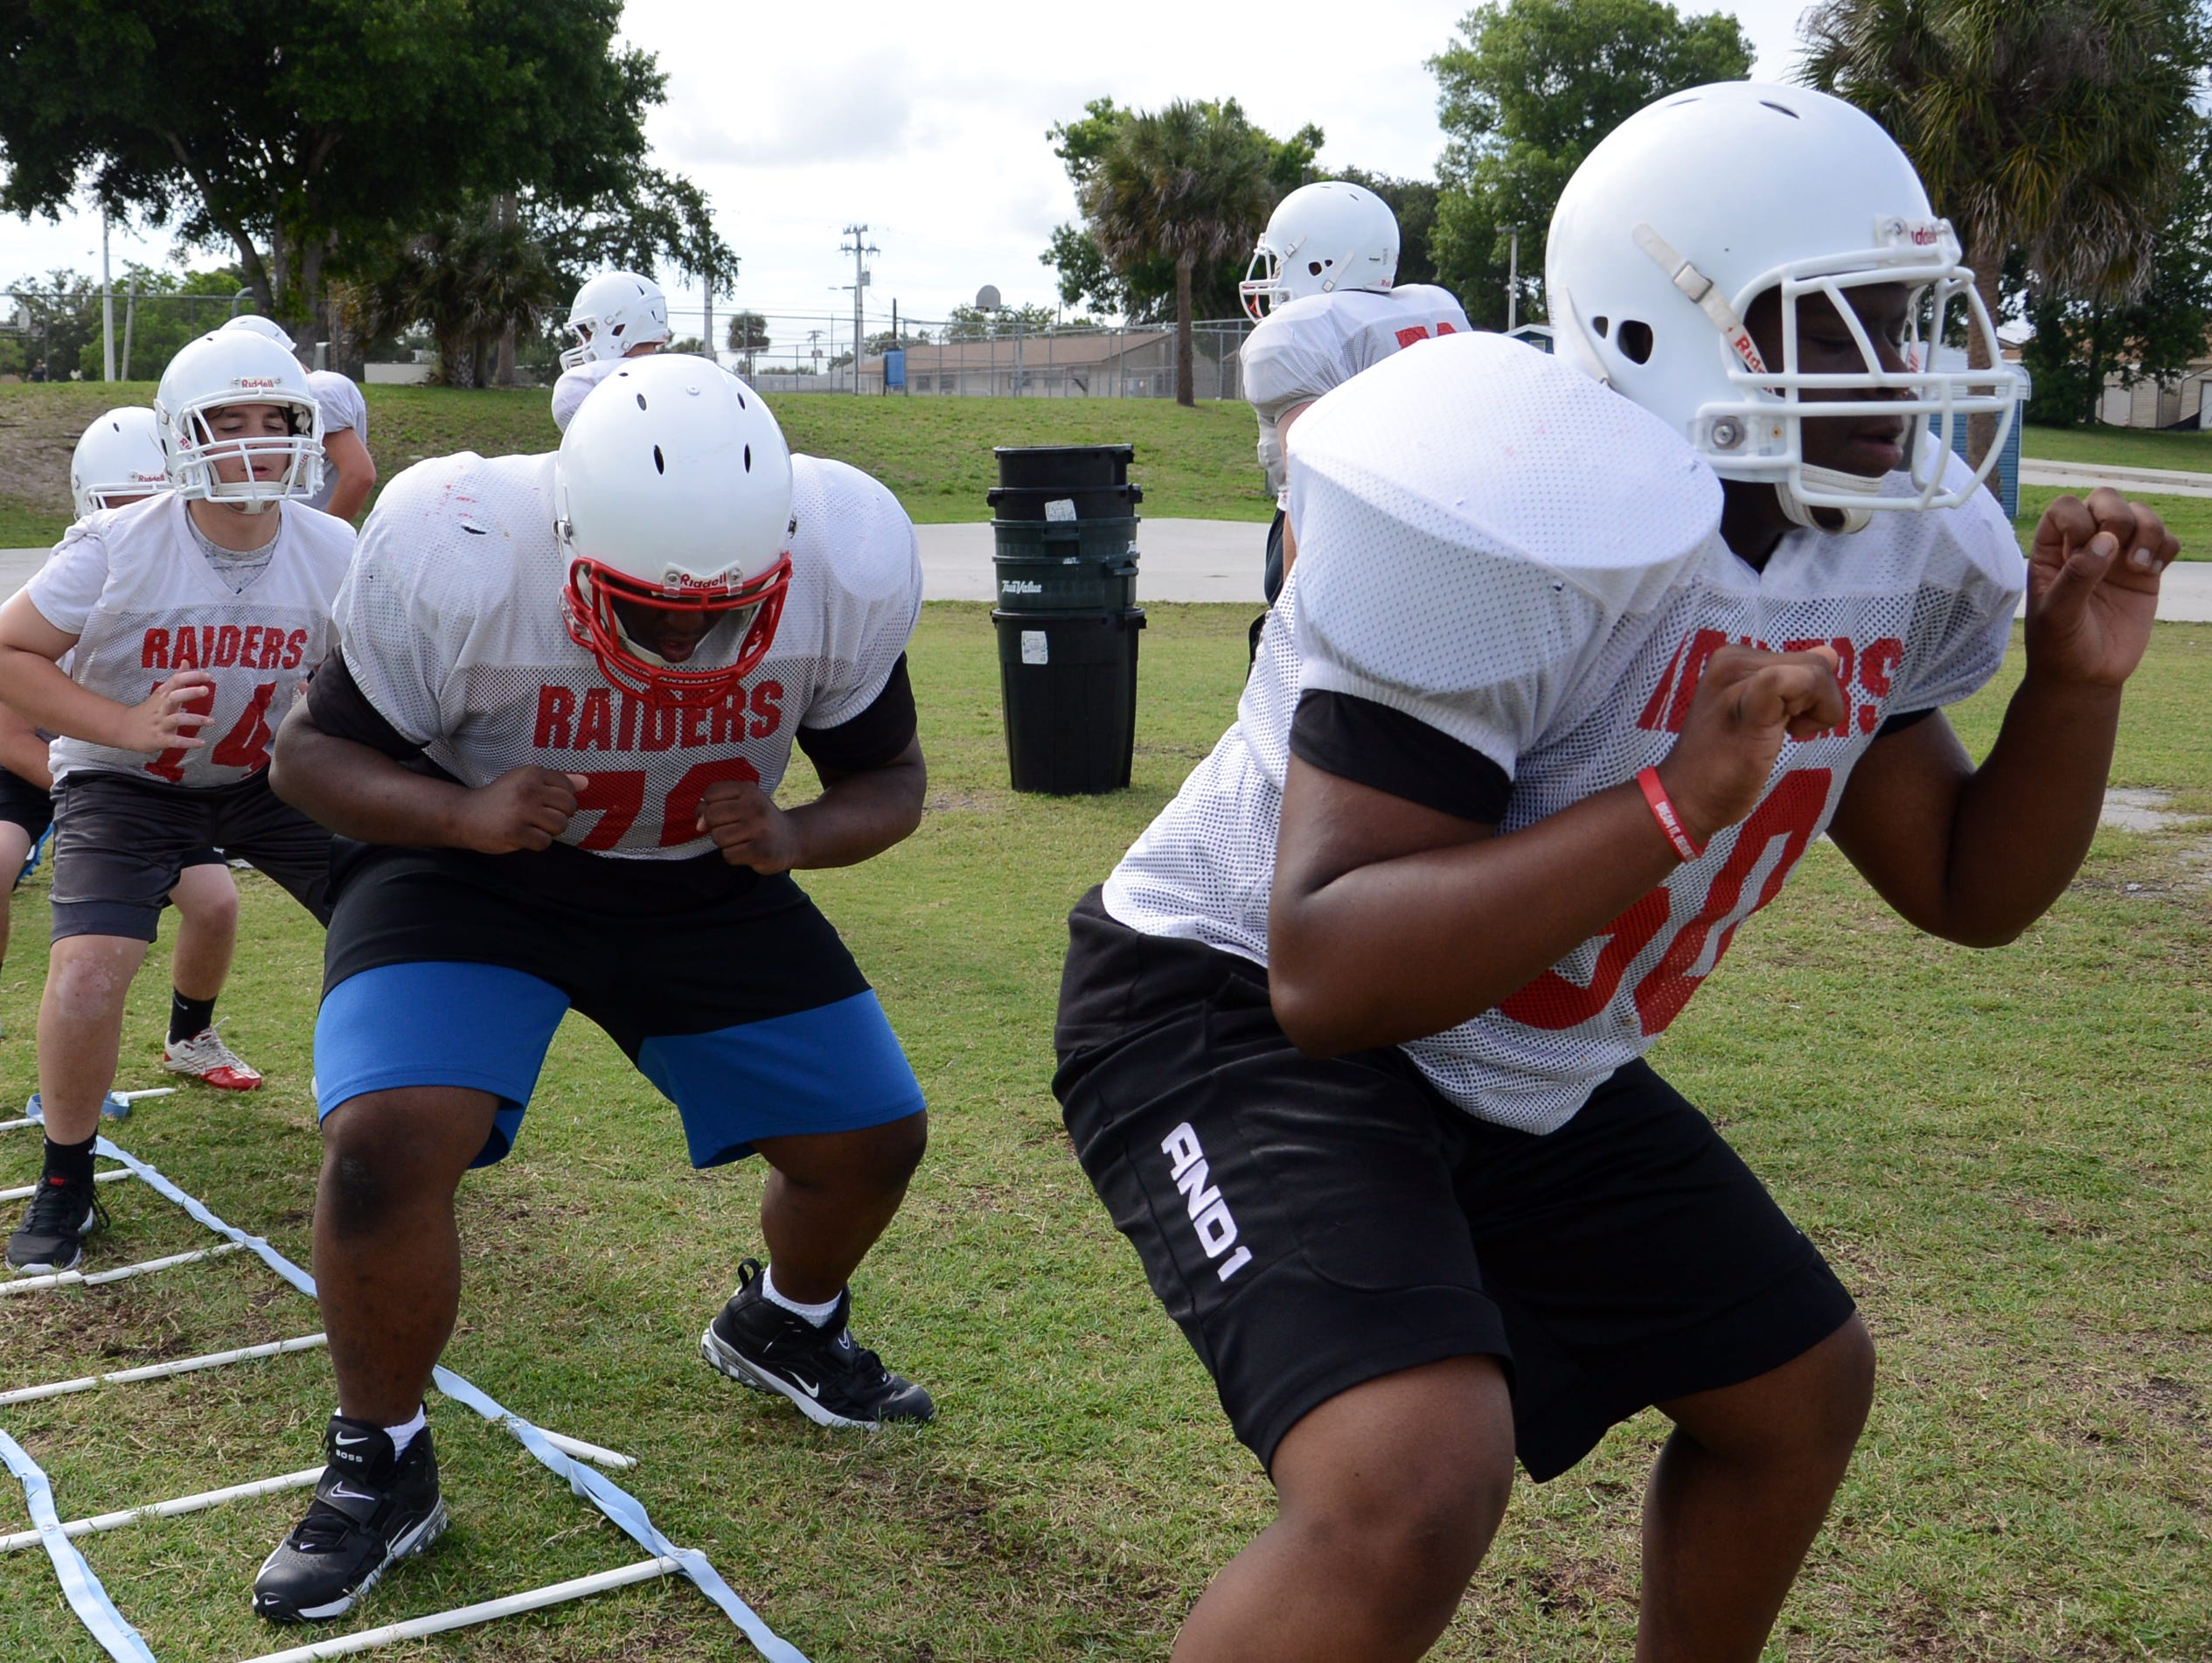 Players run through agility drills during a recent practice at Rockledge High School.